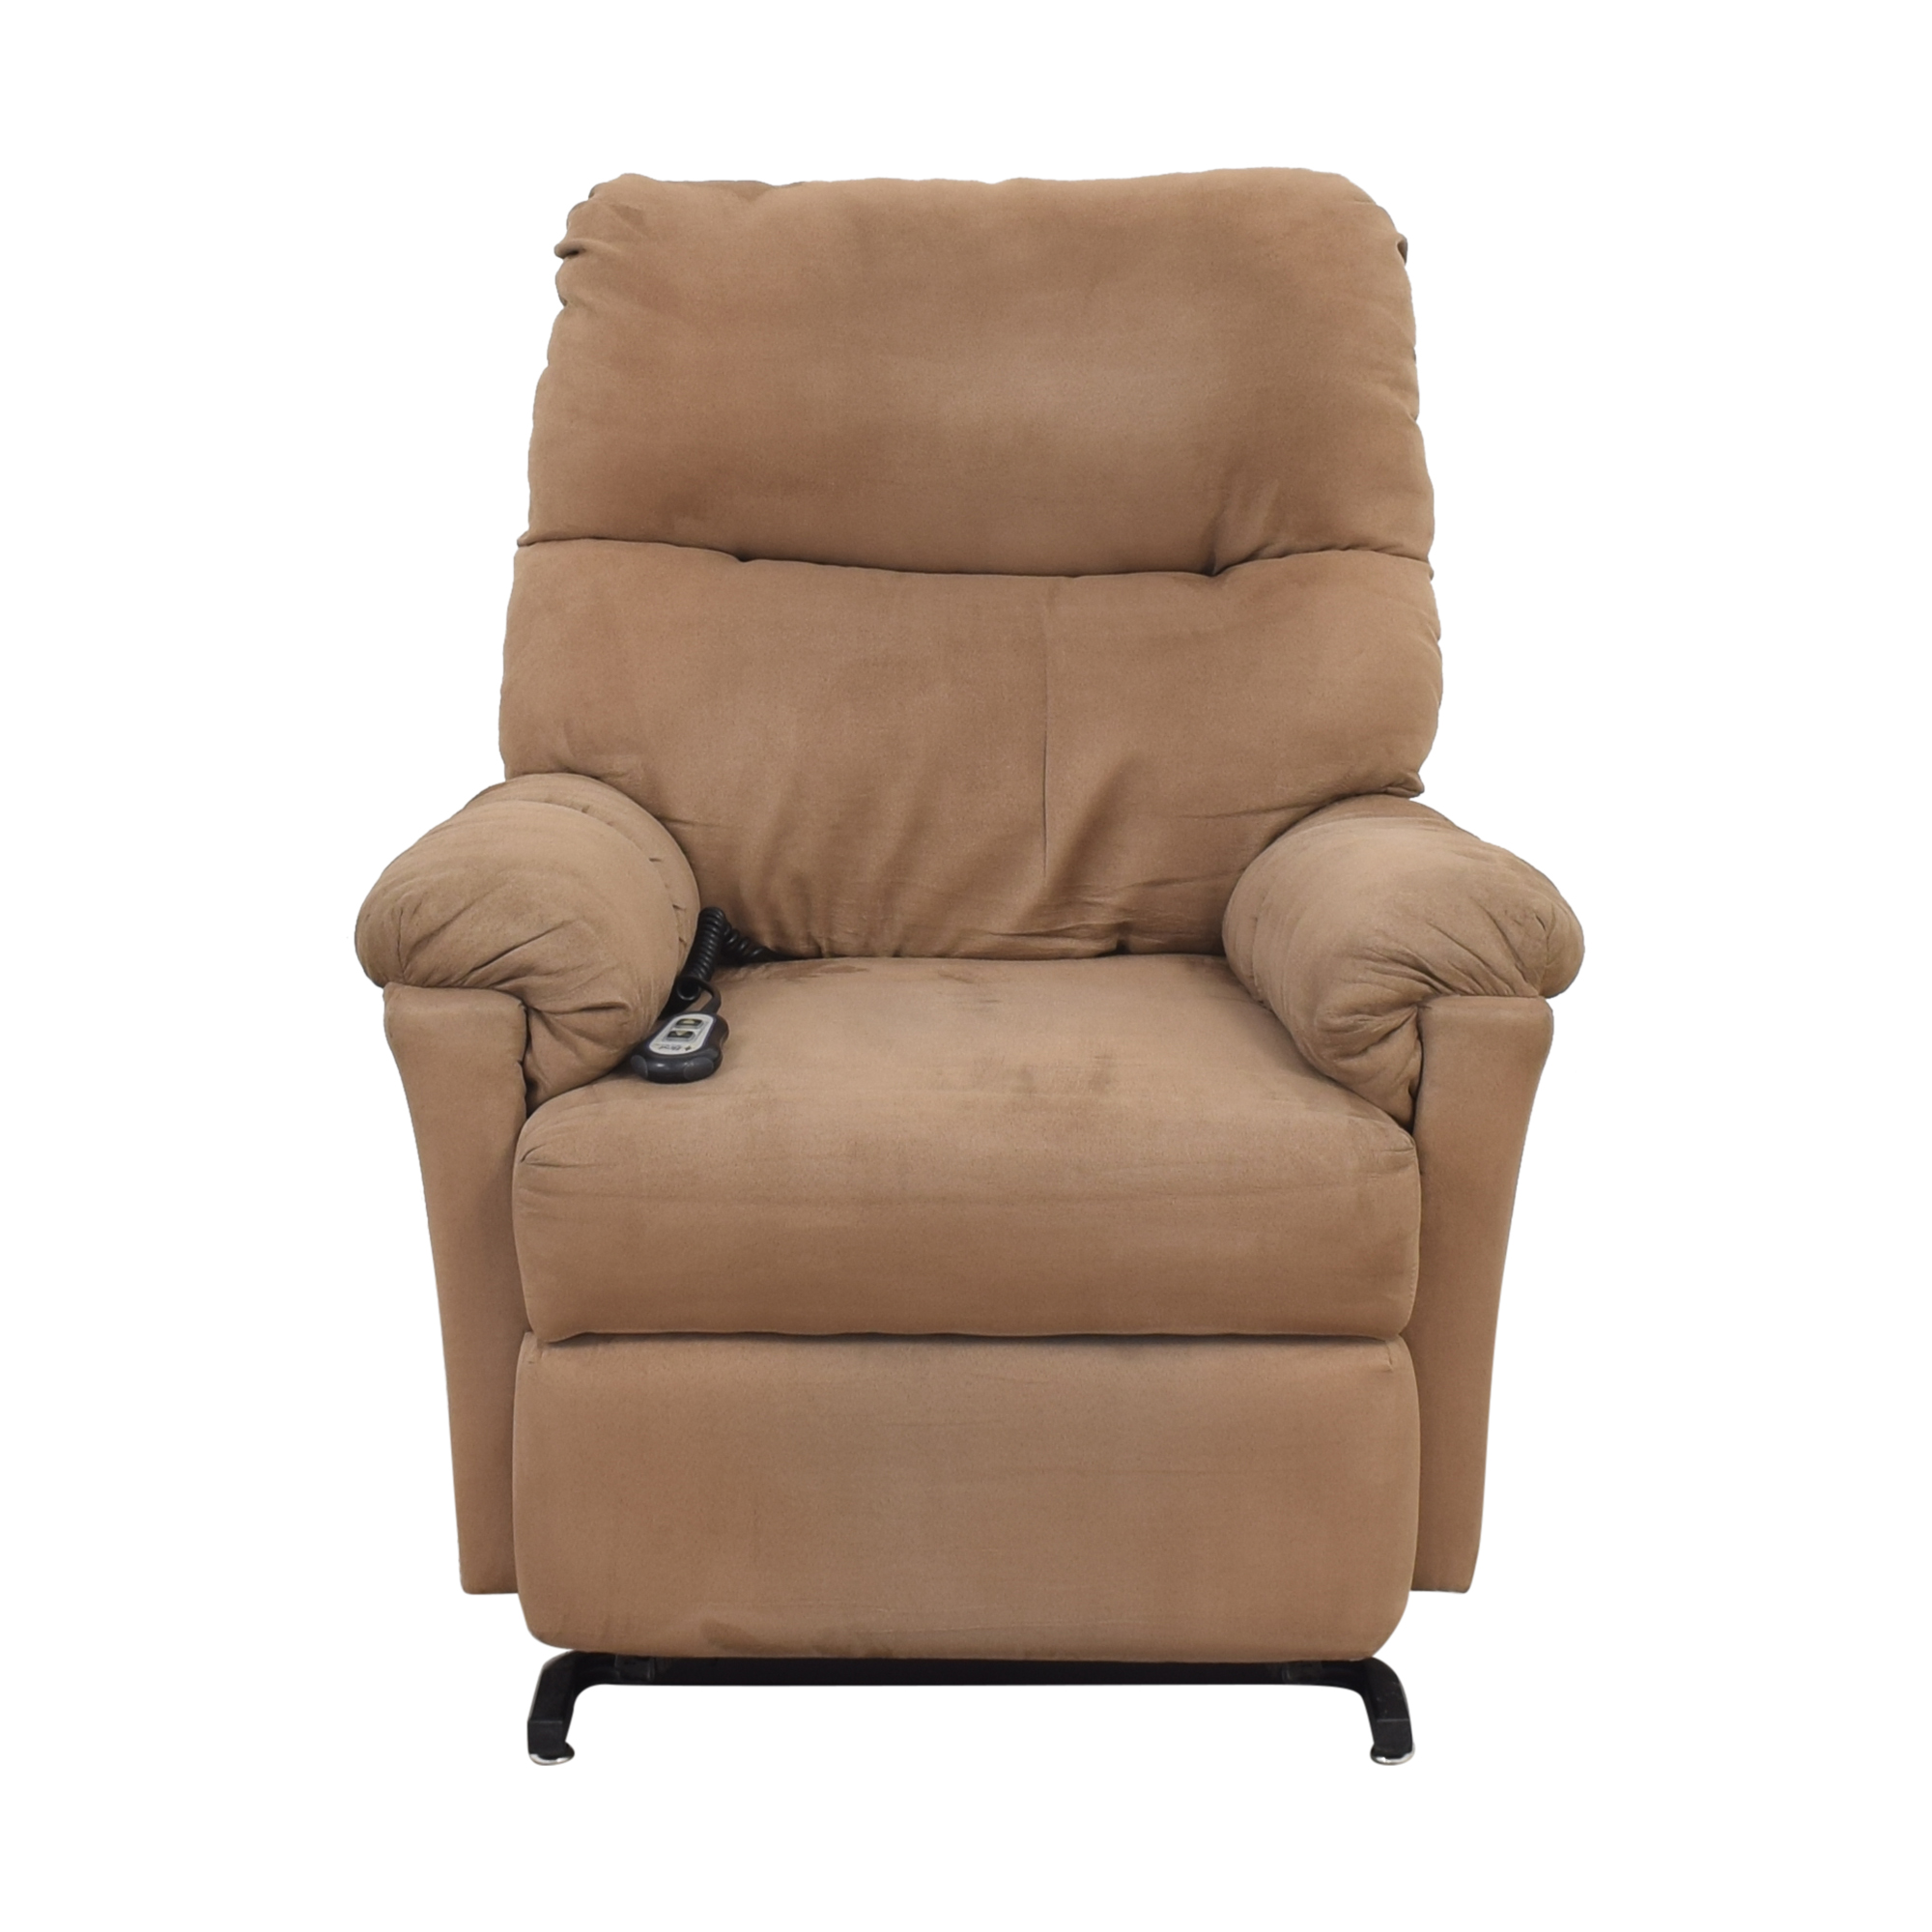 Best Chairs Recliner Best Chairs